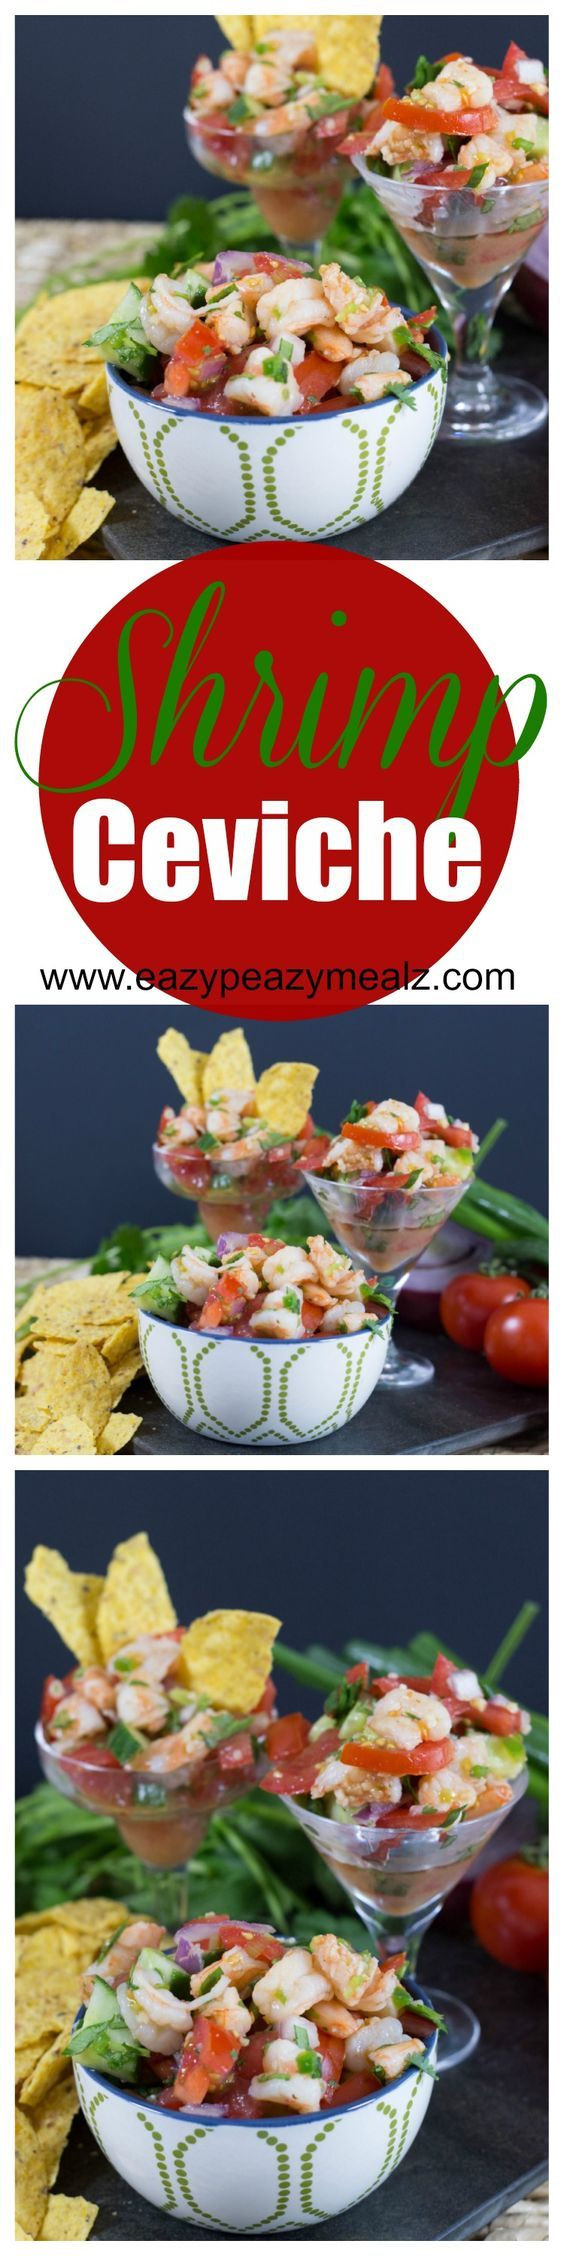 Shrimp Ceviche- A fantastic dish that is both easy to make and seriously delicious. This is my husband's favorite food! #ad - Eazy Peazy Mealz